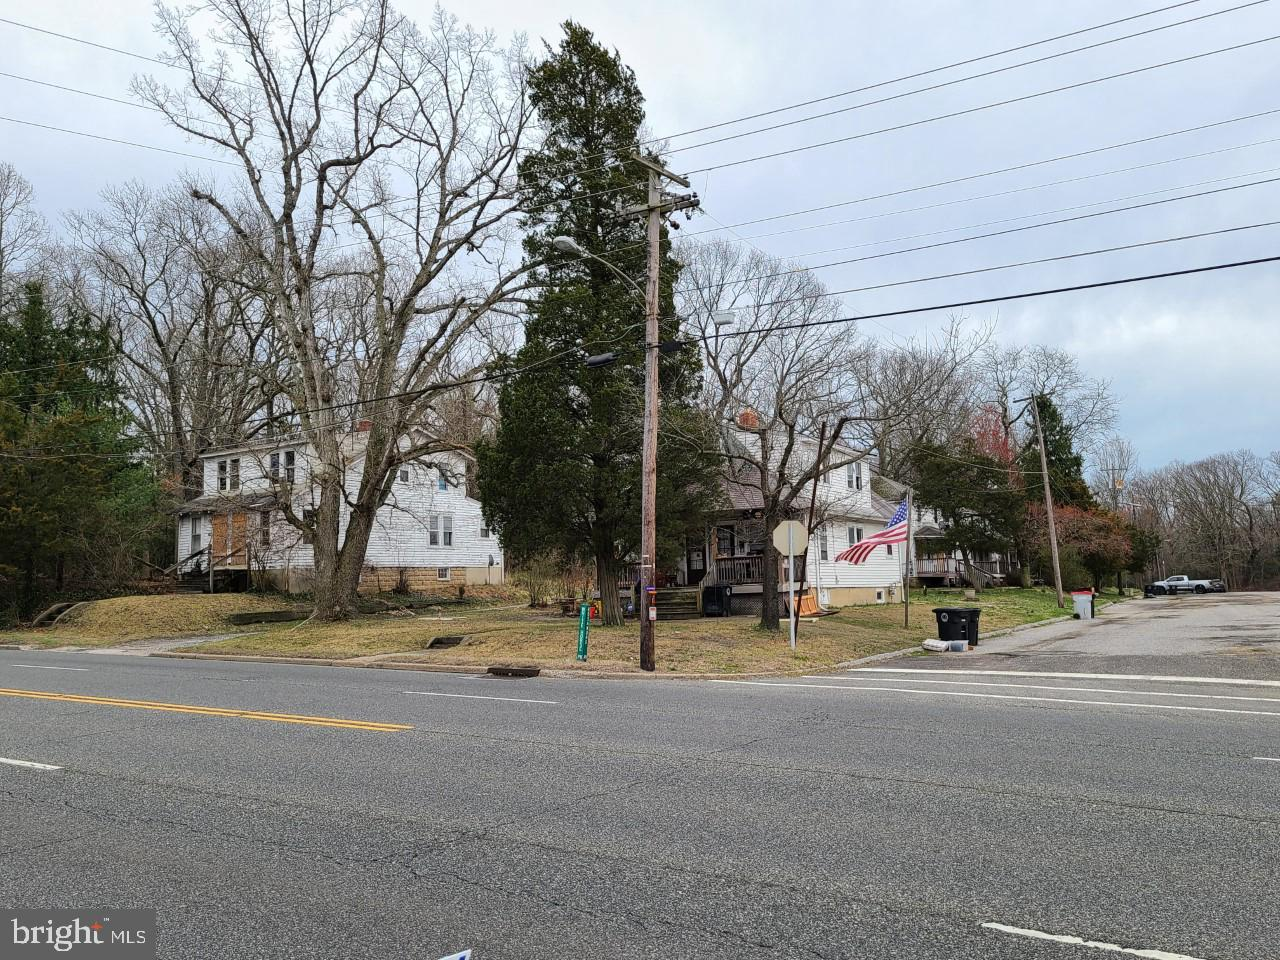 2434 S WHITE HORSE PIKE, LINDENWOLD, NJ 08021